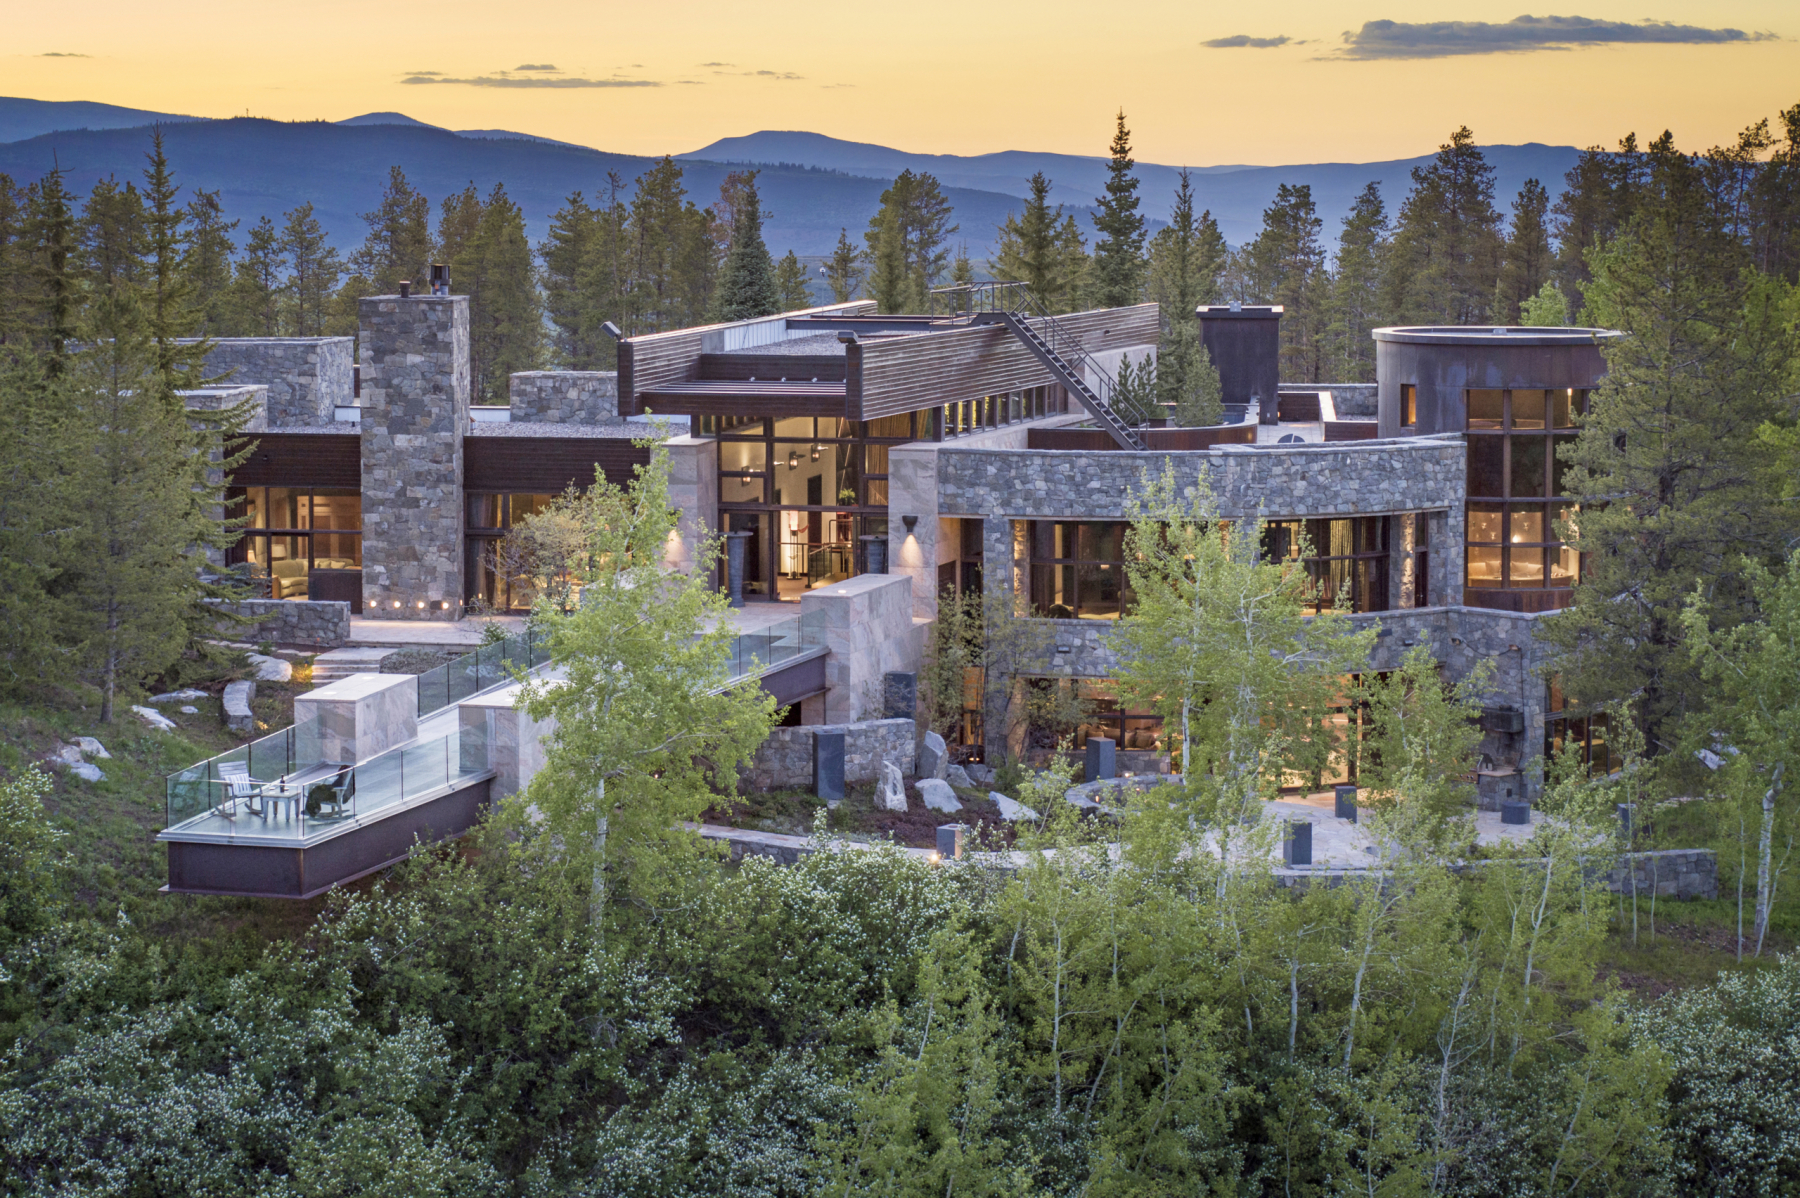 Vail-MLS-Final-Images-reordered-Malia-001-scaled